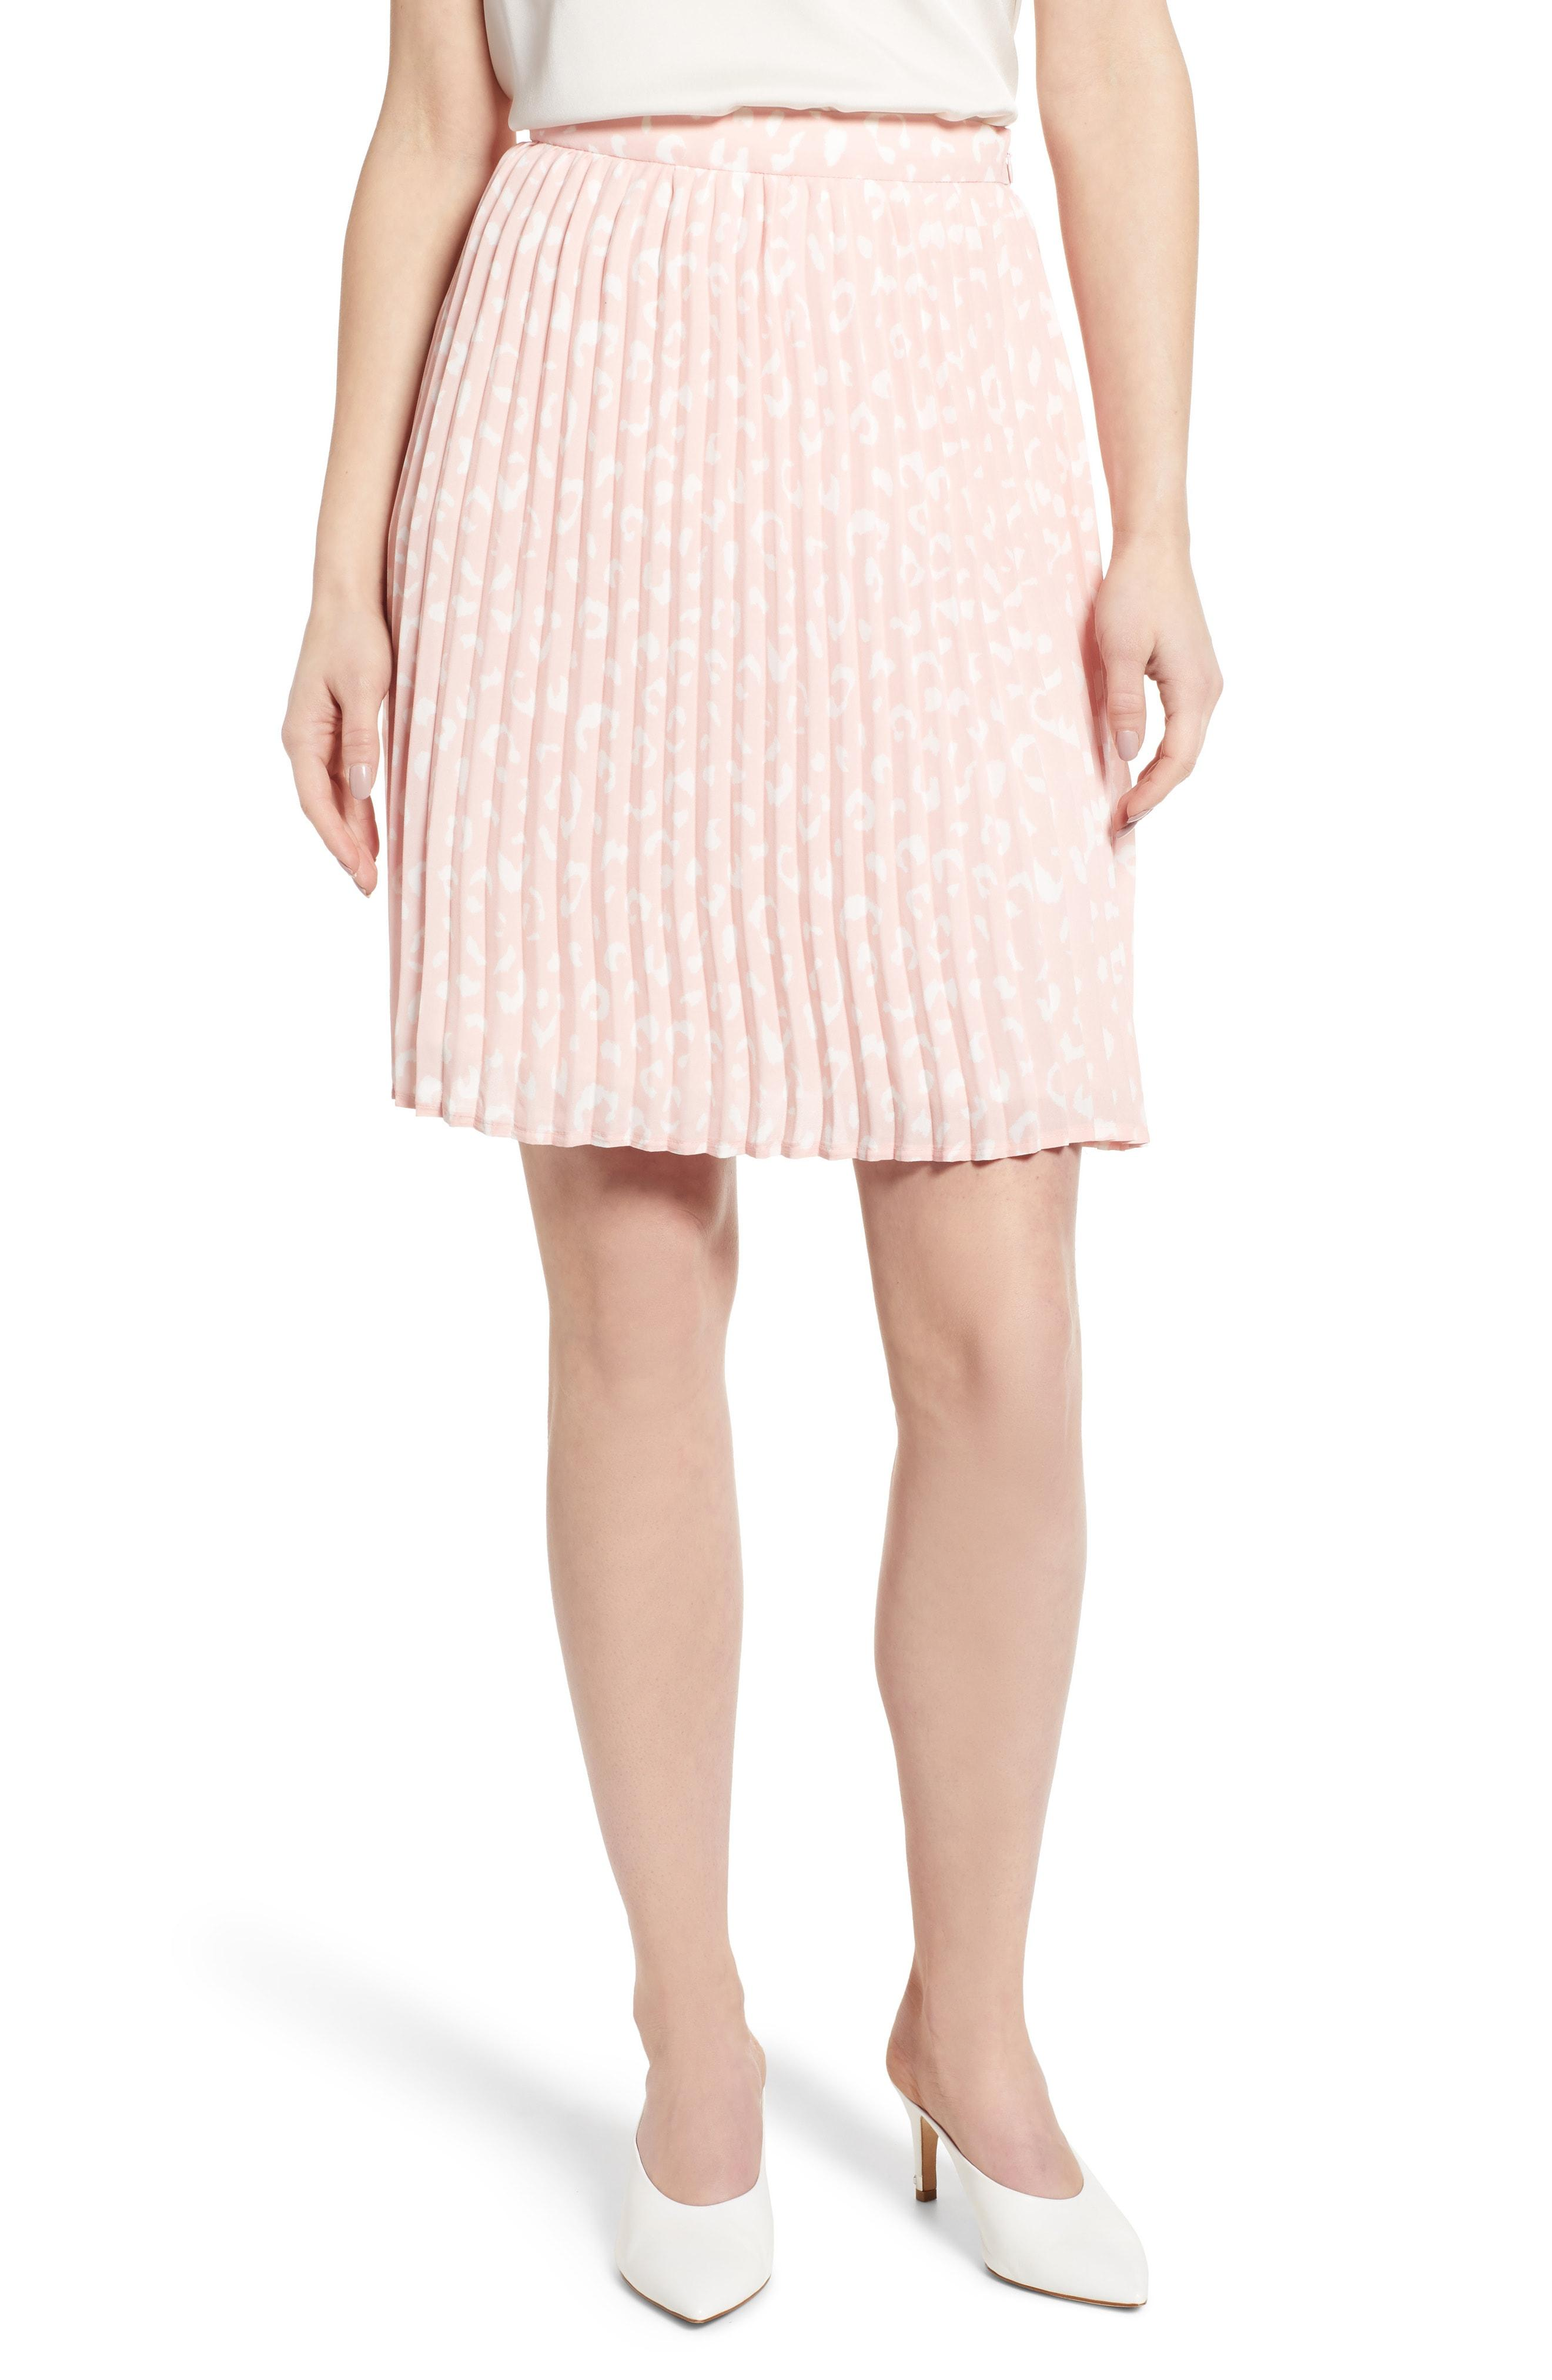 9382047a64b Lyst - Gibson X International Women s Day Thamarr Pleated Skirt in Pink